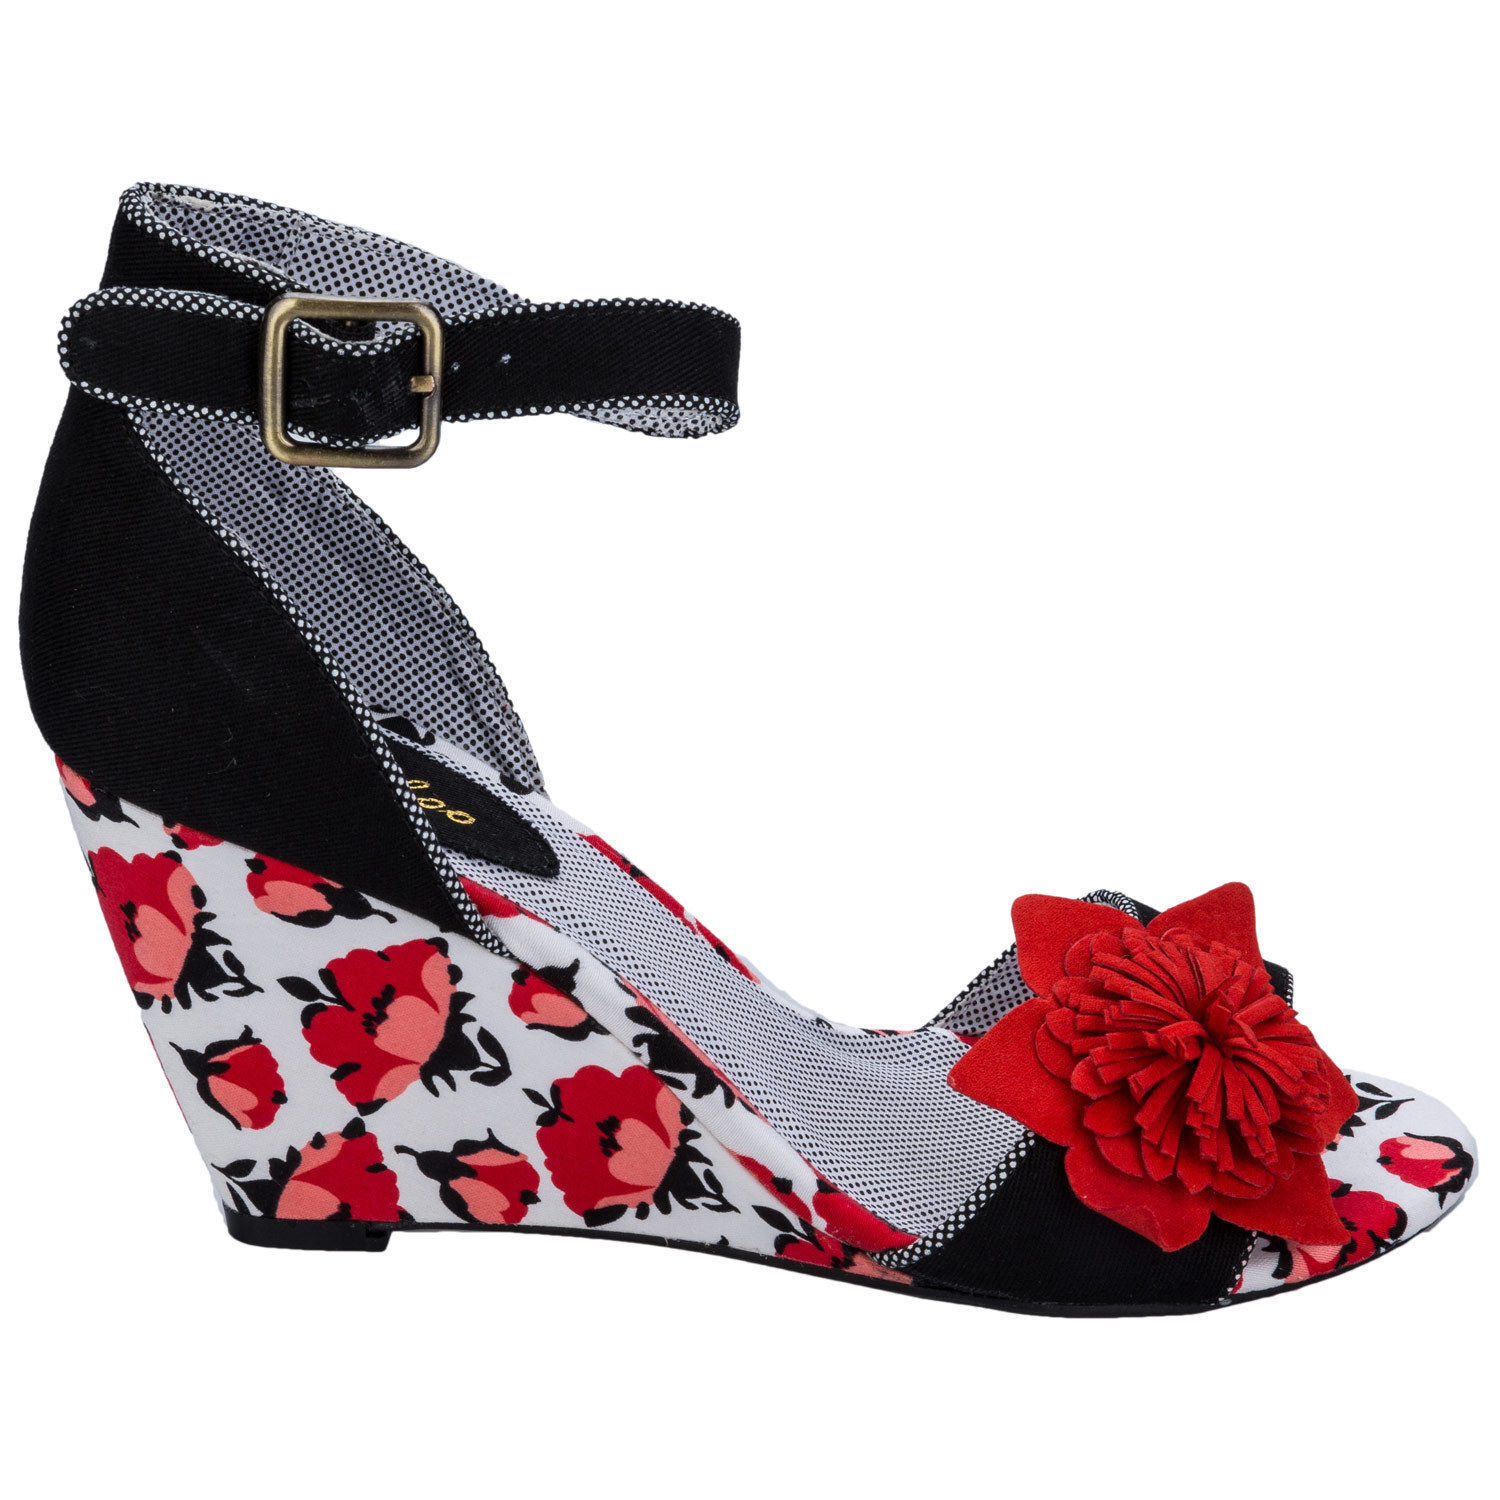 Ruby Shoo Womens Tulip Sky Open Toe Wedge shoes Sandals UK 3 Free Shipping